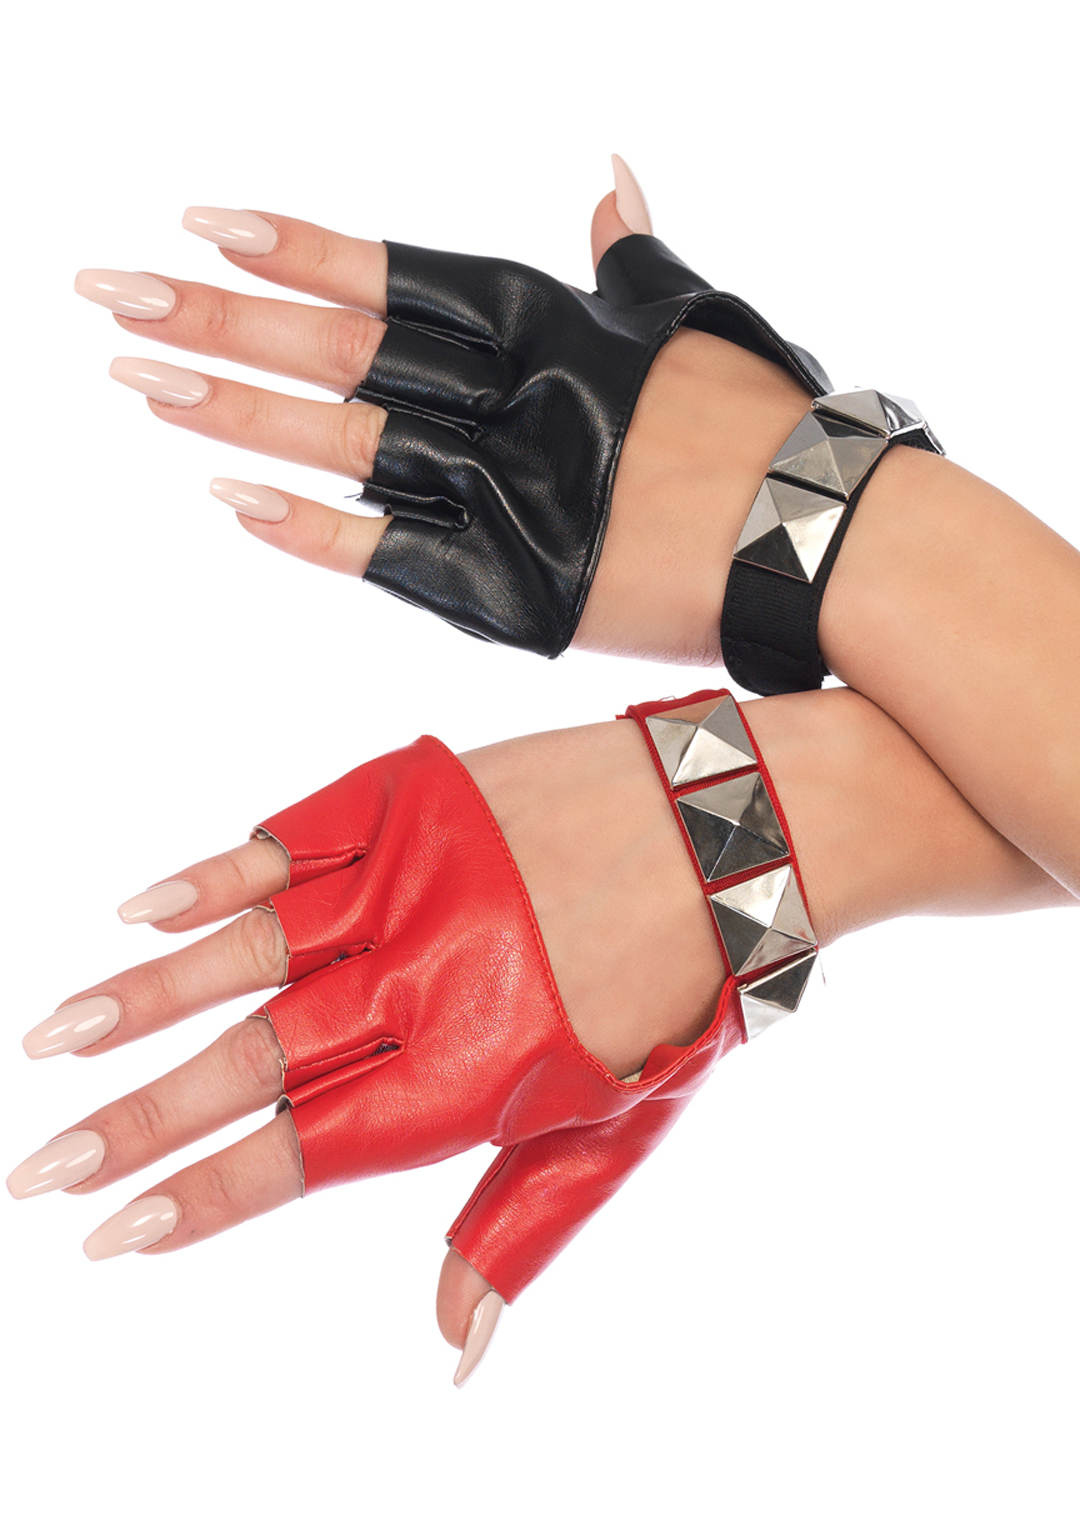 Harley Two-Tone Studded Fingerless Gloves